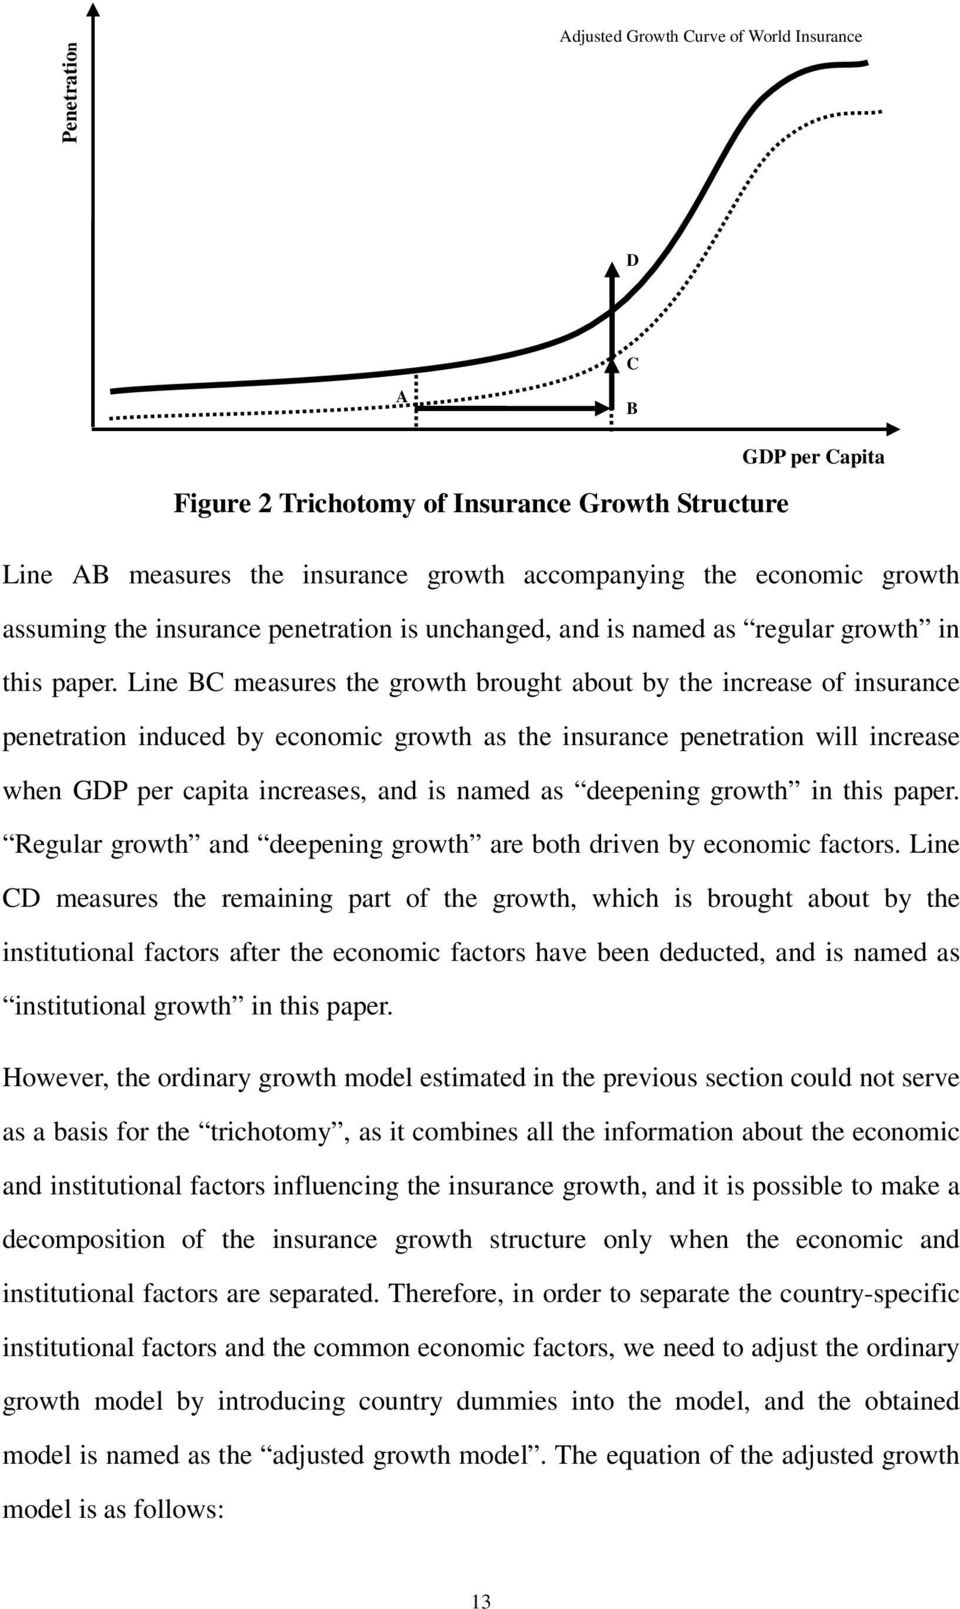 Line BC measures the growth brought about by the increase of insurance penetration induced by economic growth as the insurance penetration will increase when GDP per capita increases, and is named as